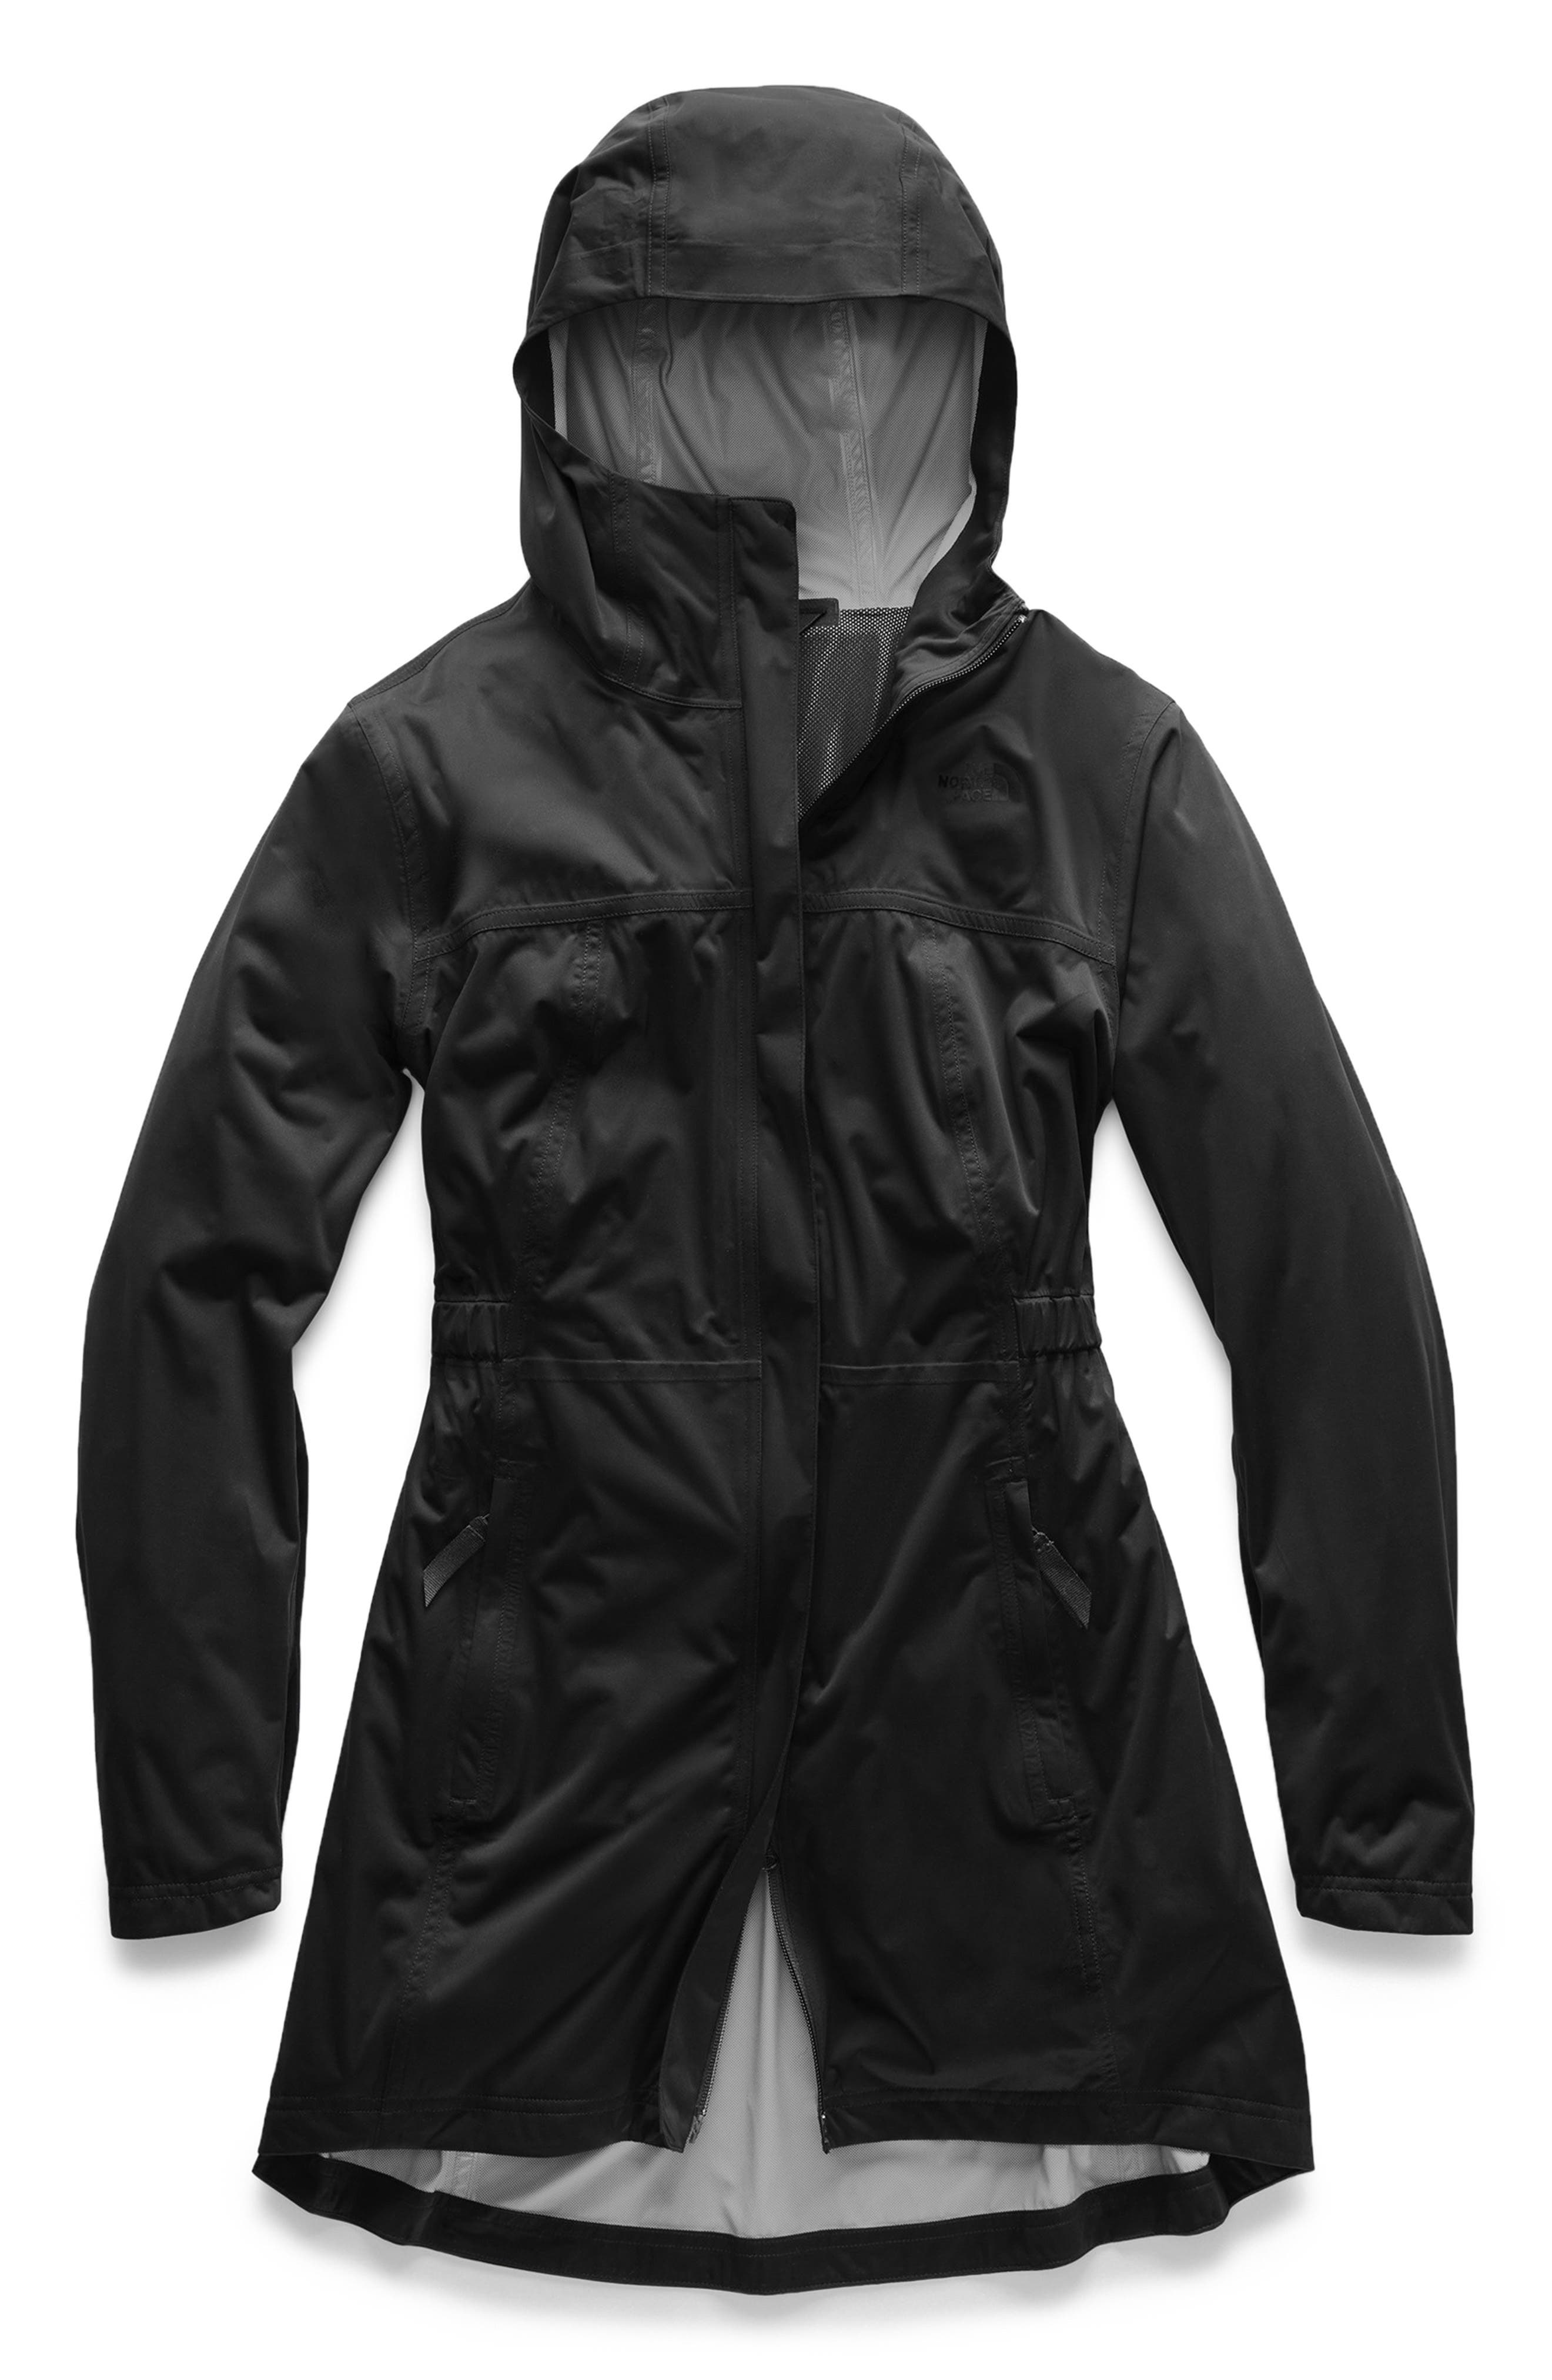 THE NORTH FACE, Allproof Stretch Parka, Main thumbnail 1, color, TNF BLACK